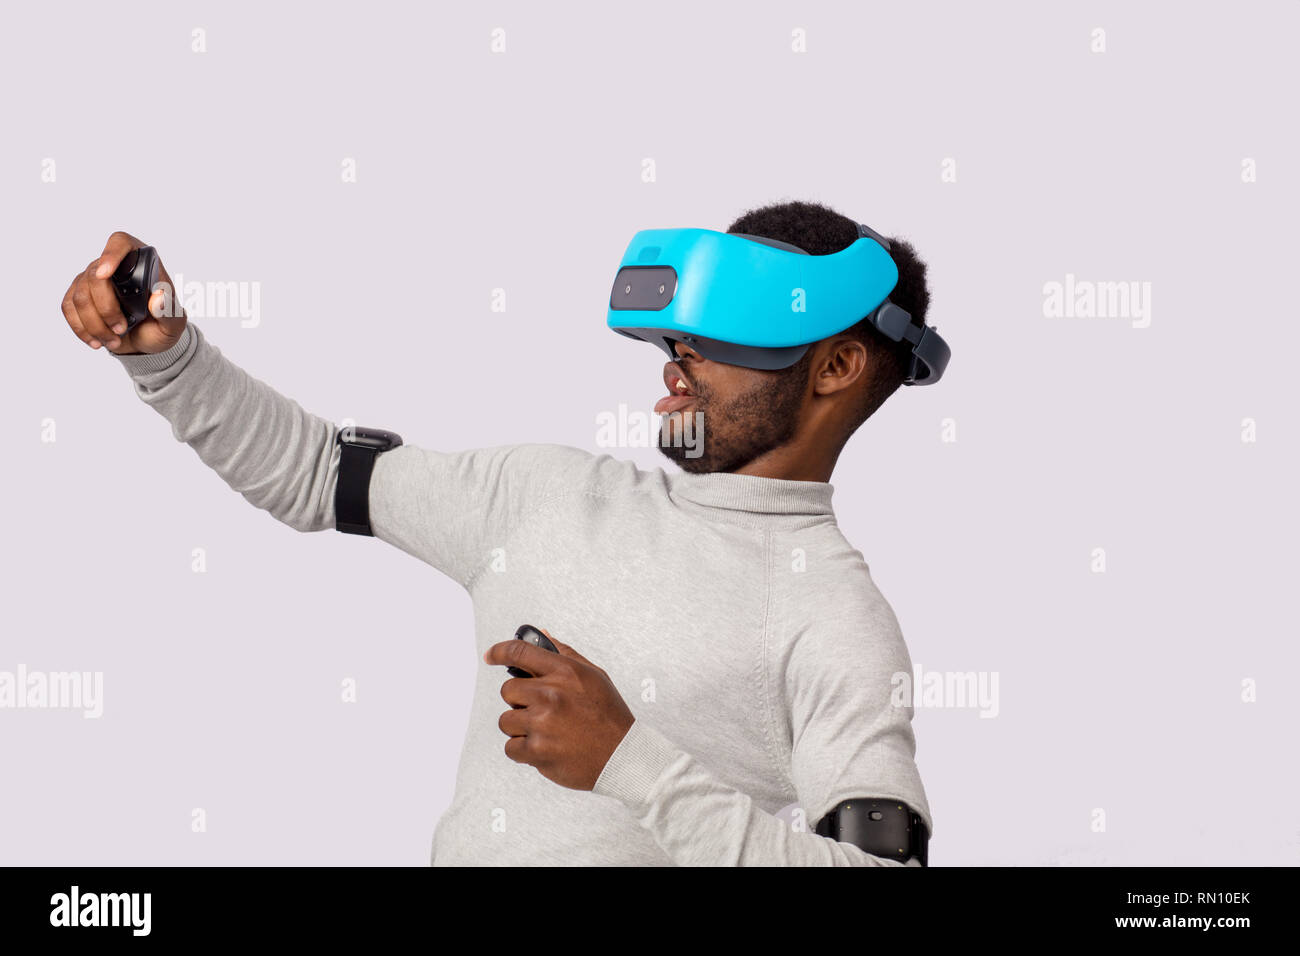 6e71a6a1ed9 Amazed excited African businessman in white sweater using mobile vr headset